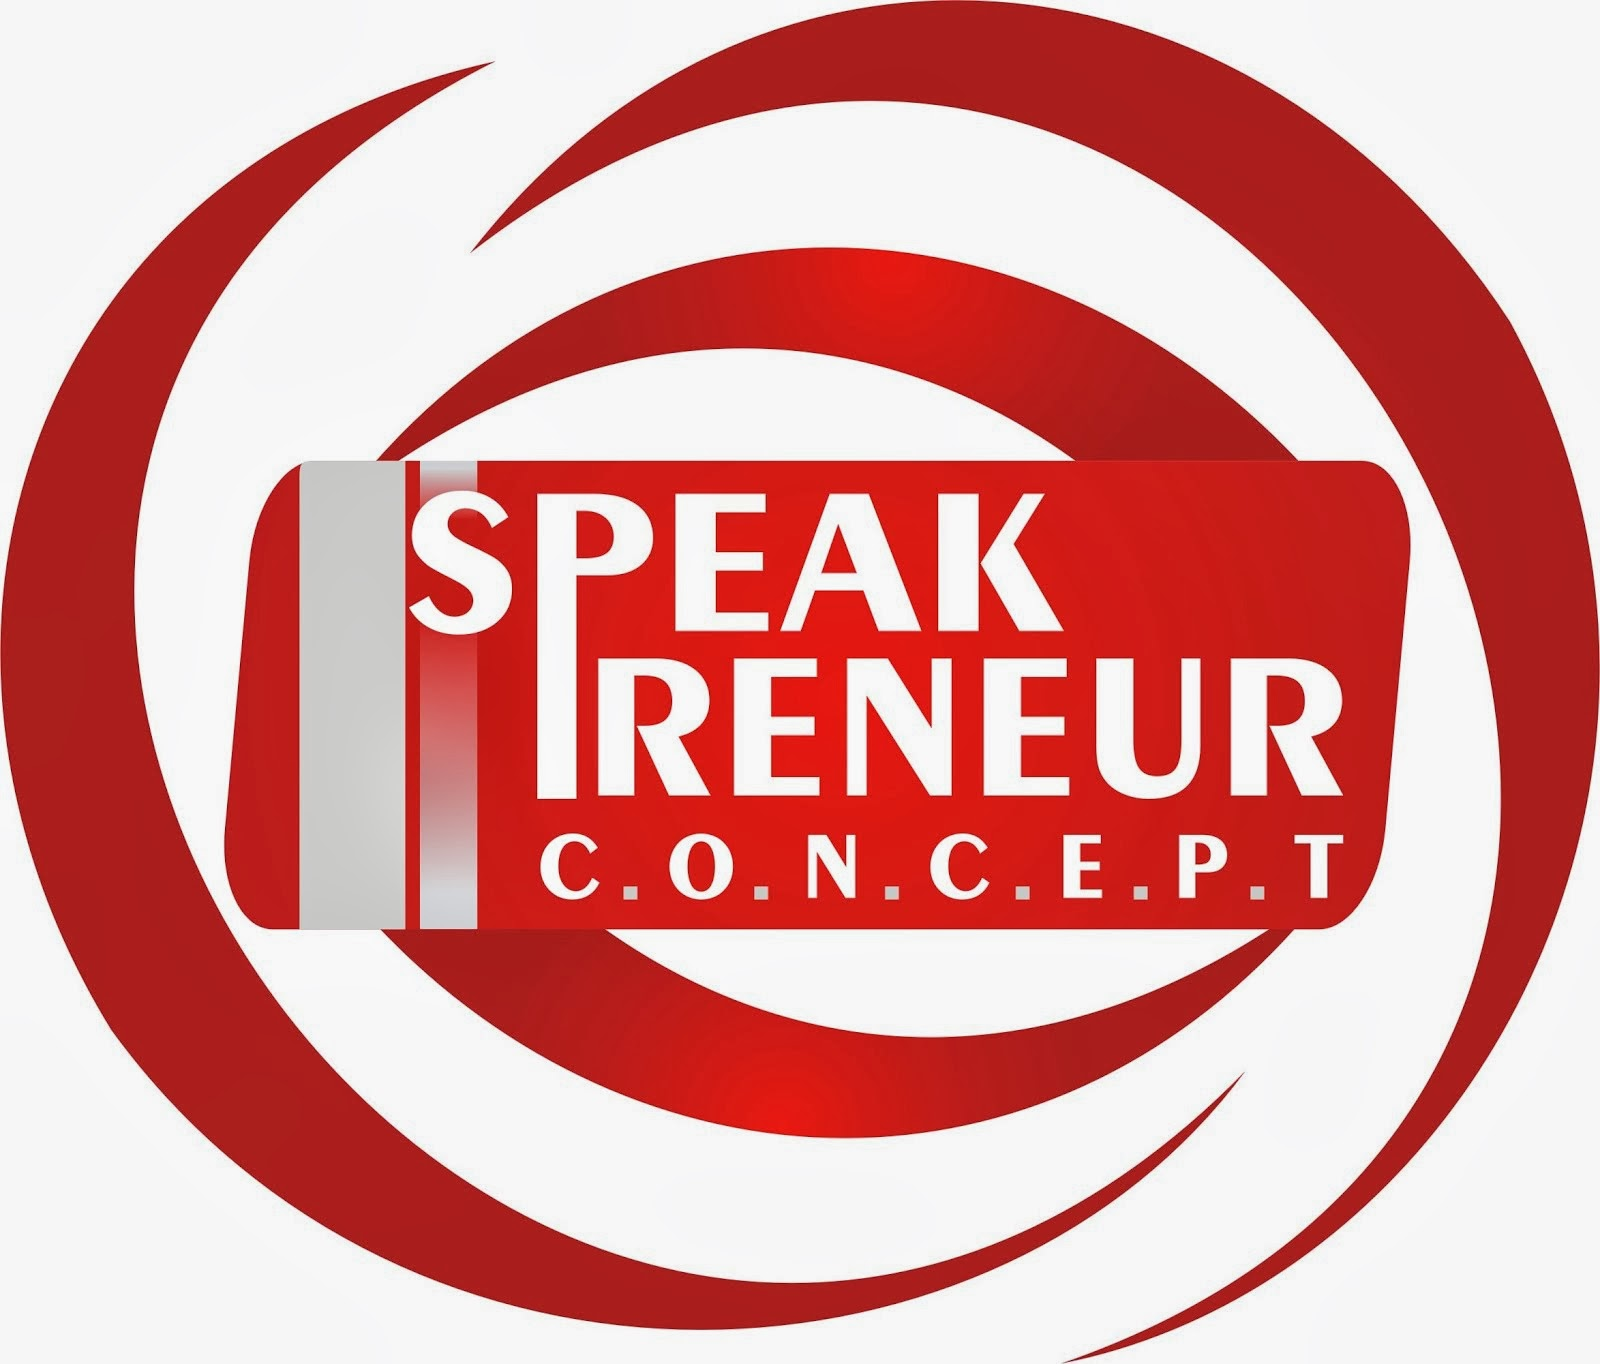 speakpreneur logo